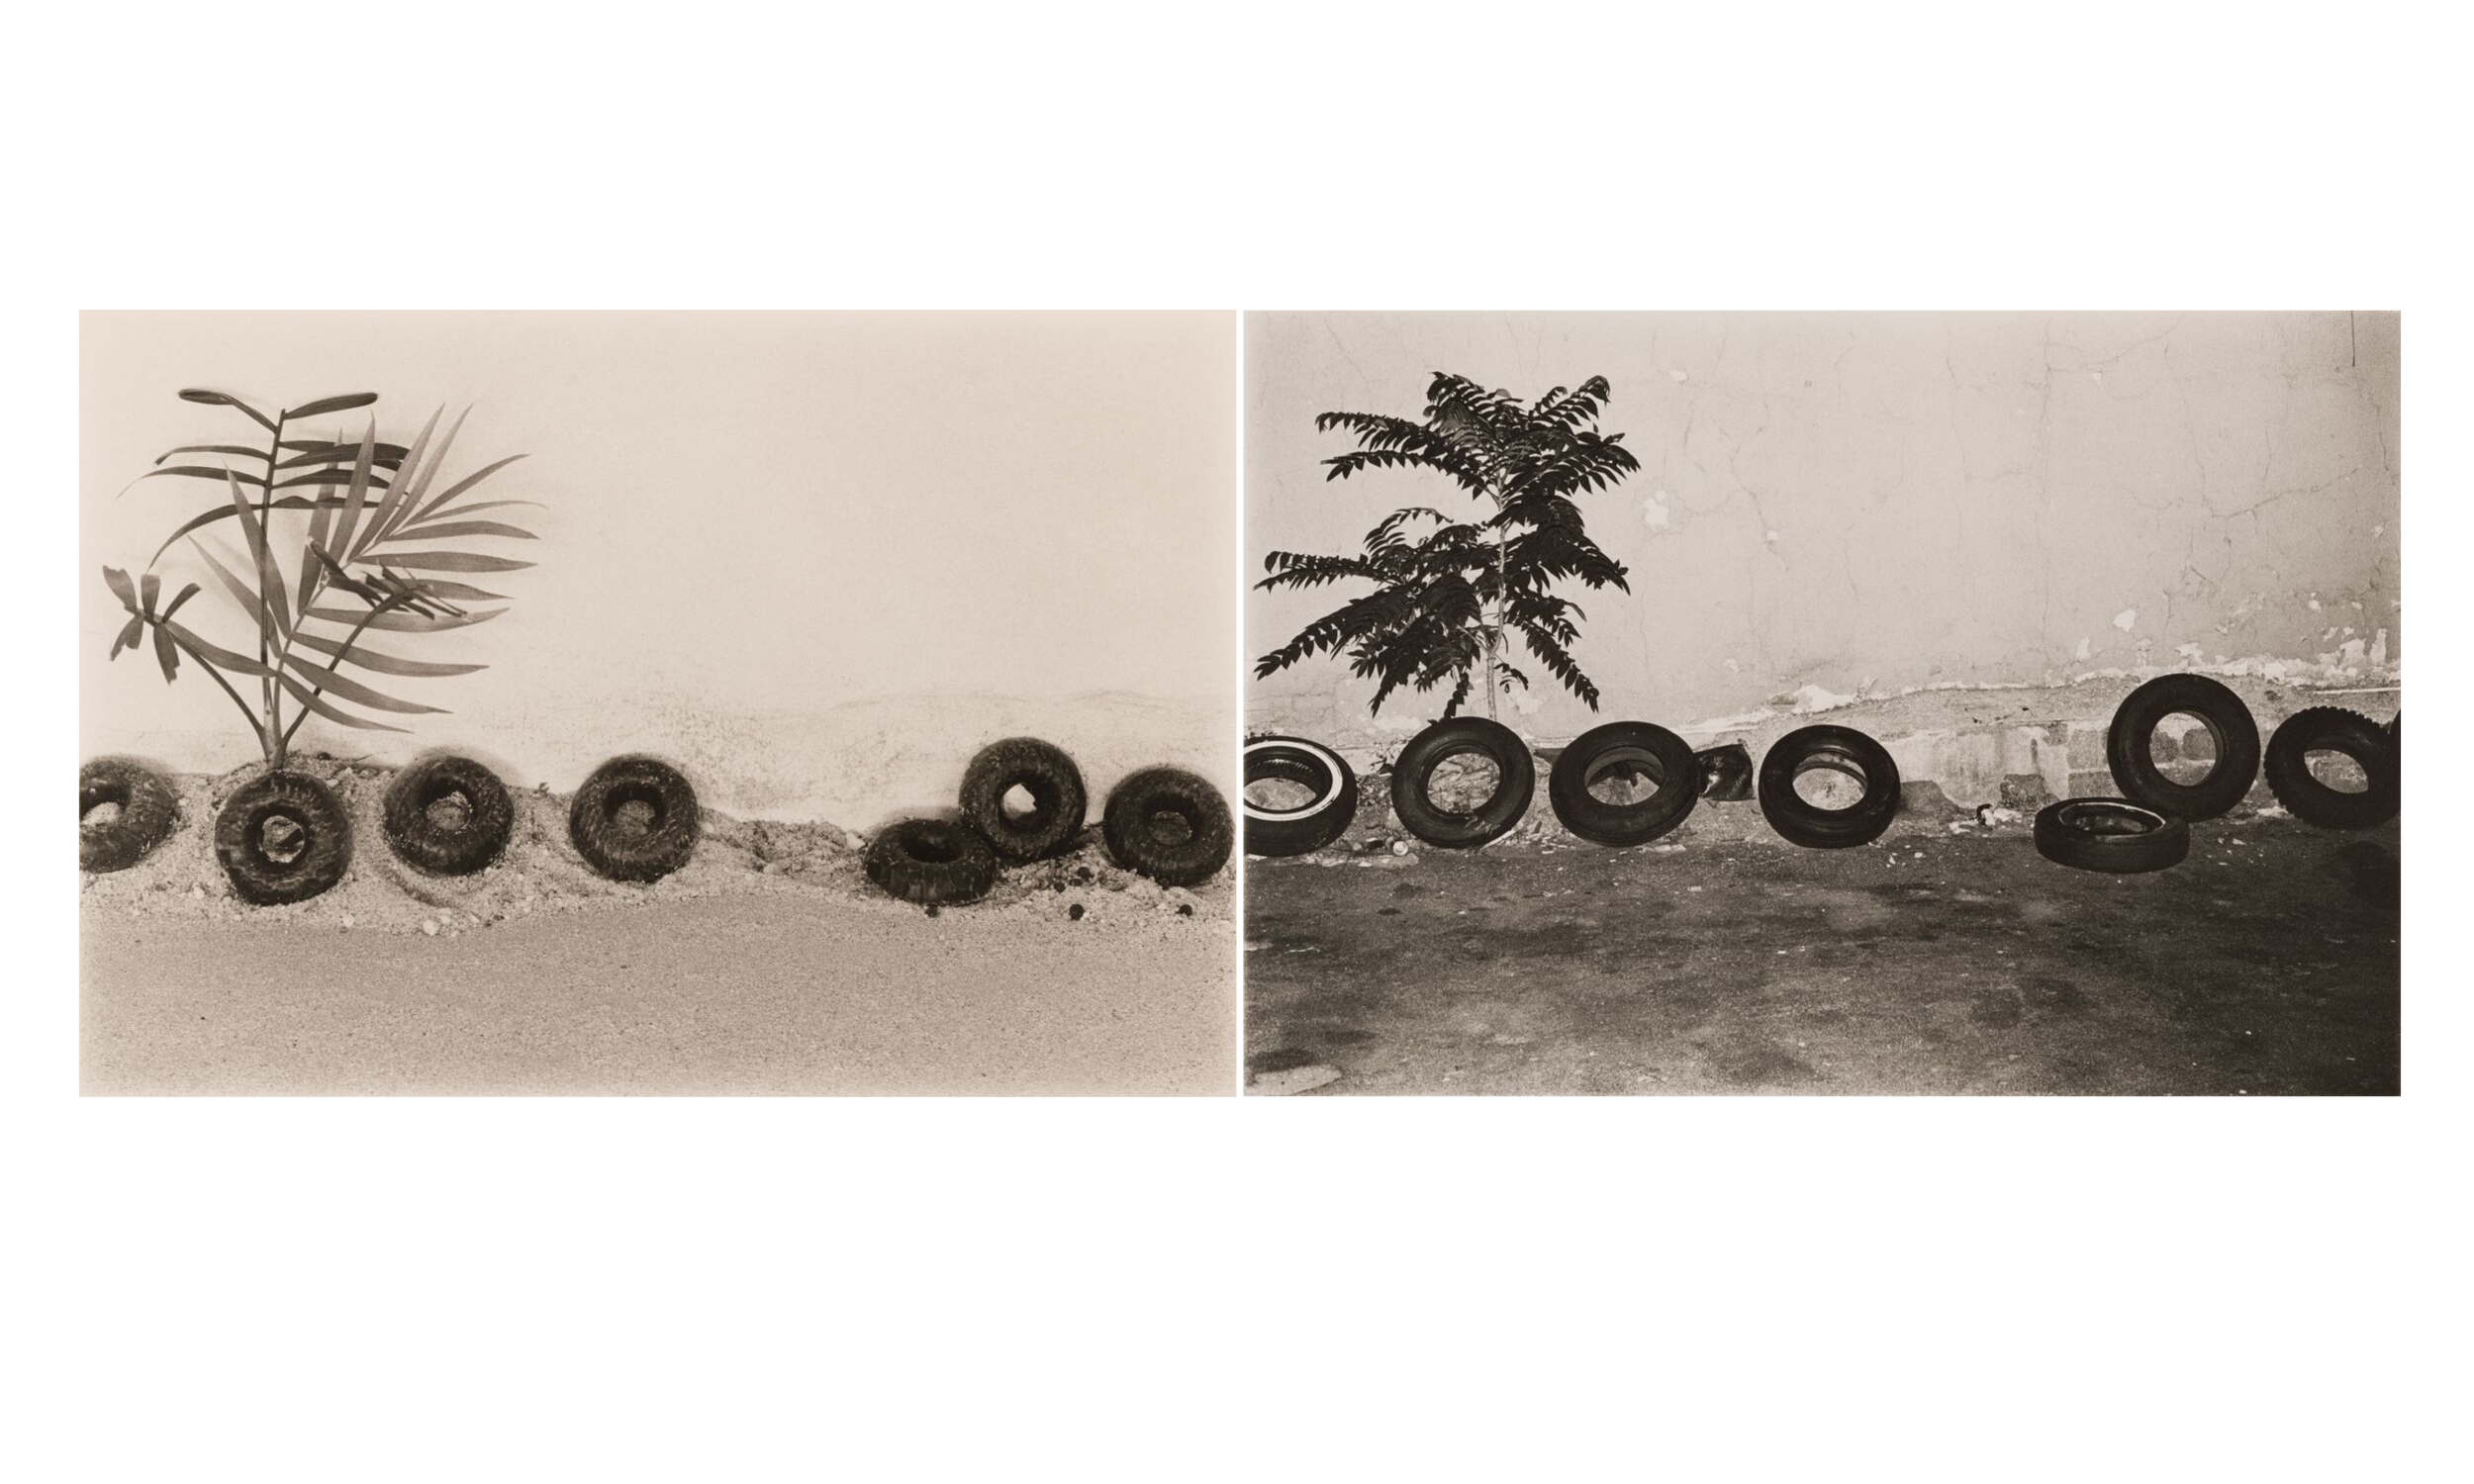 Marcia Resnick (American, b. 1950),  Landscape/Loftscape #13 , 1976, gelatin silver prints, 8 x 11 ¾ in. (images, each). Carnegie Museum of Art, Pittsburgh; Purchased with funds provided by the Arts, Equity, and Education Fund, 2018.40.A-.B Courtesy Deborah Bell Photographs, New York, and Paul M. Hertzmann, Inc., San Francisco © Marcia Resnick